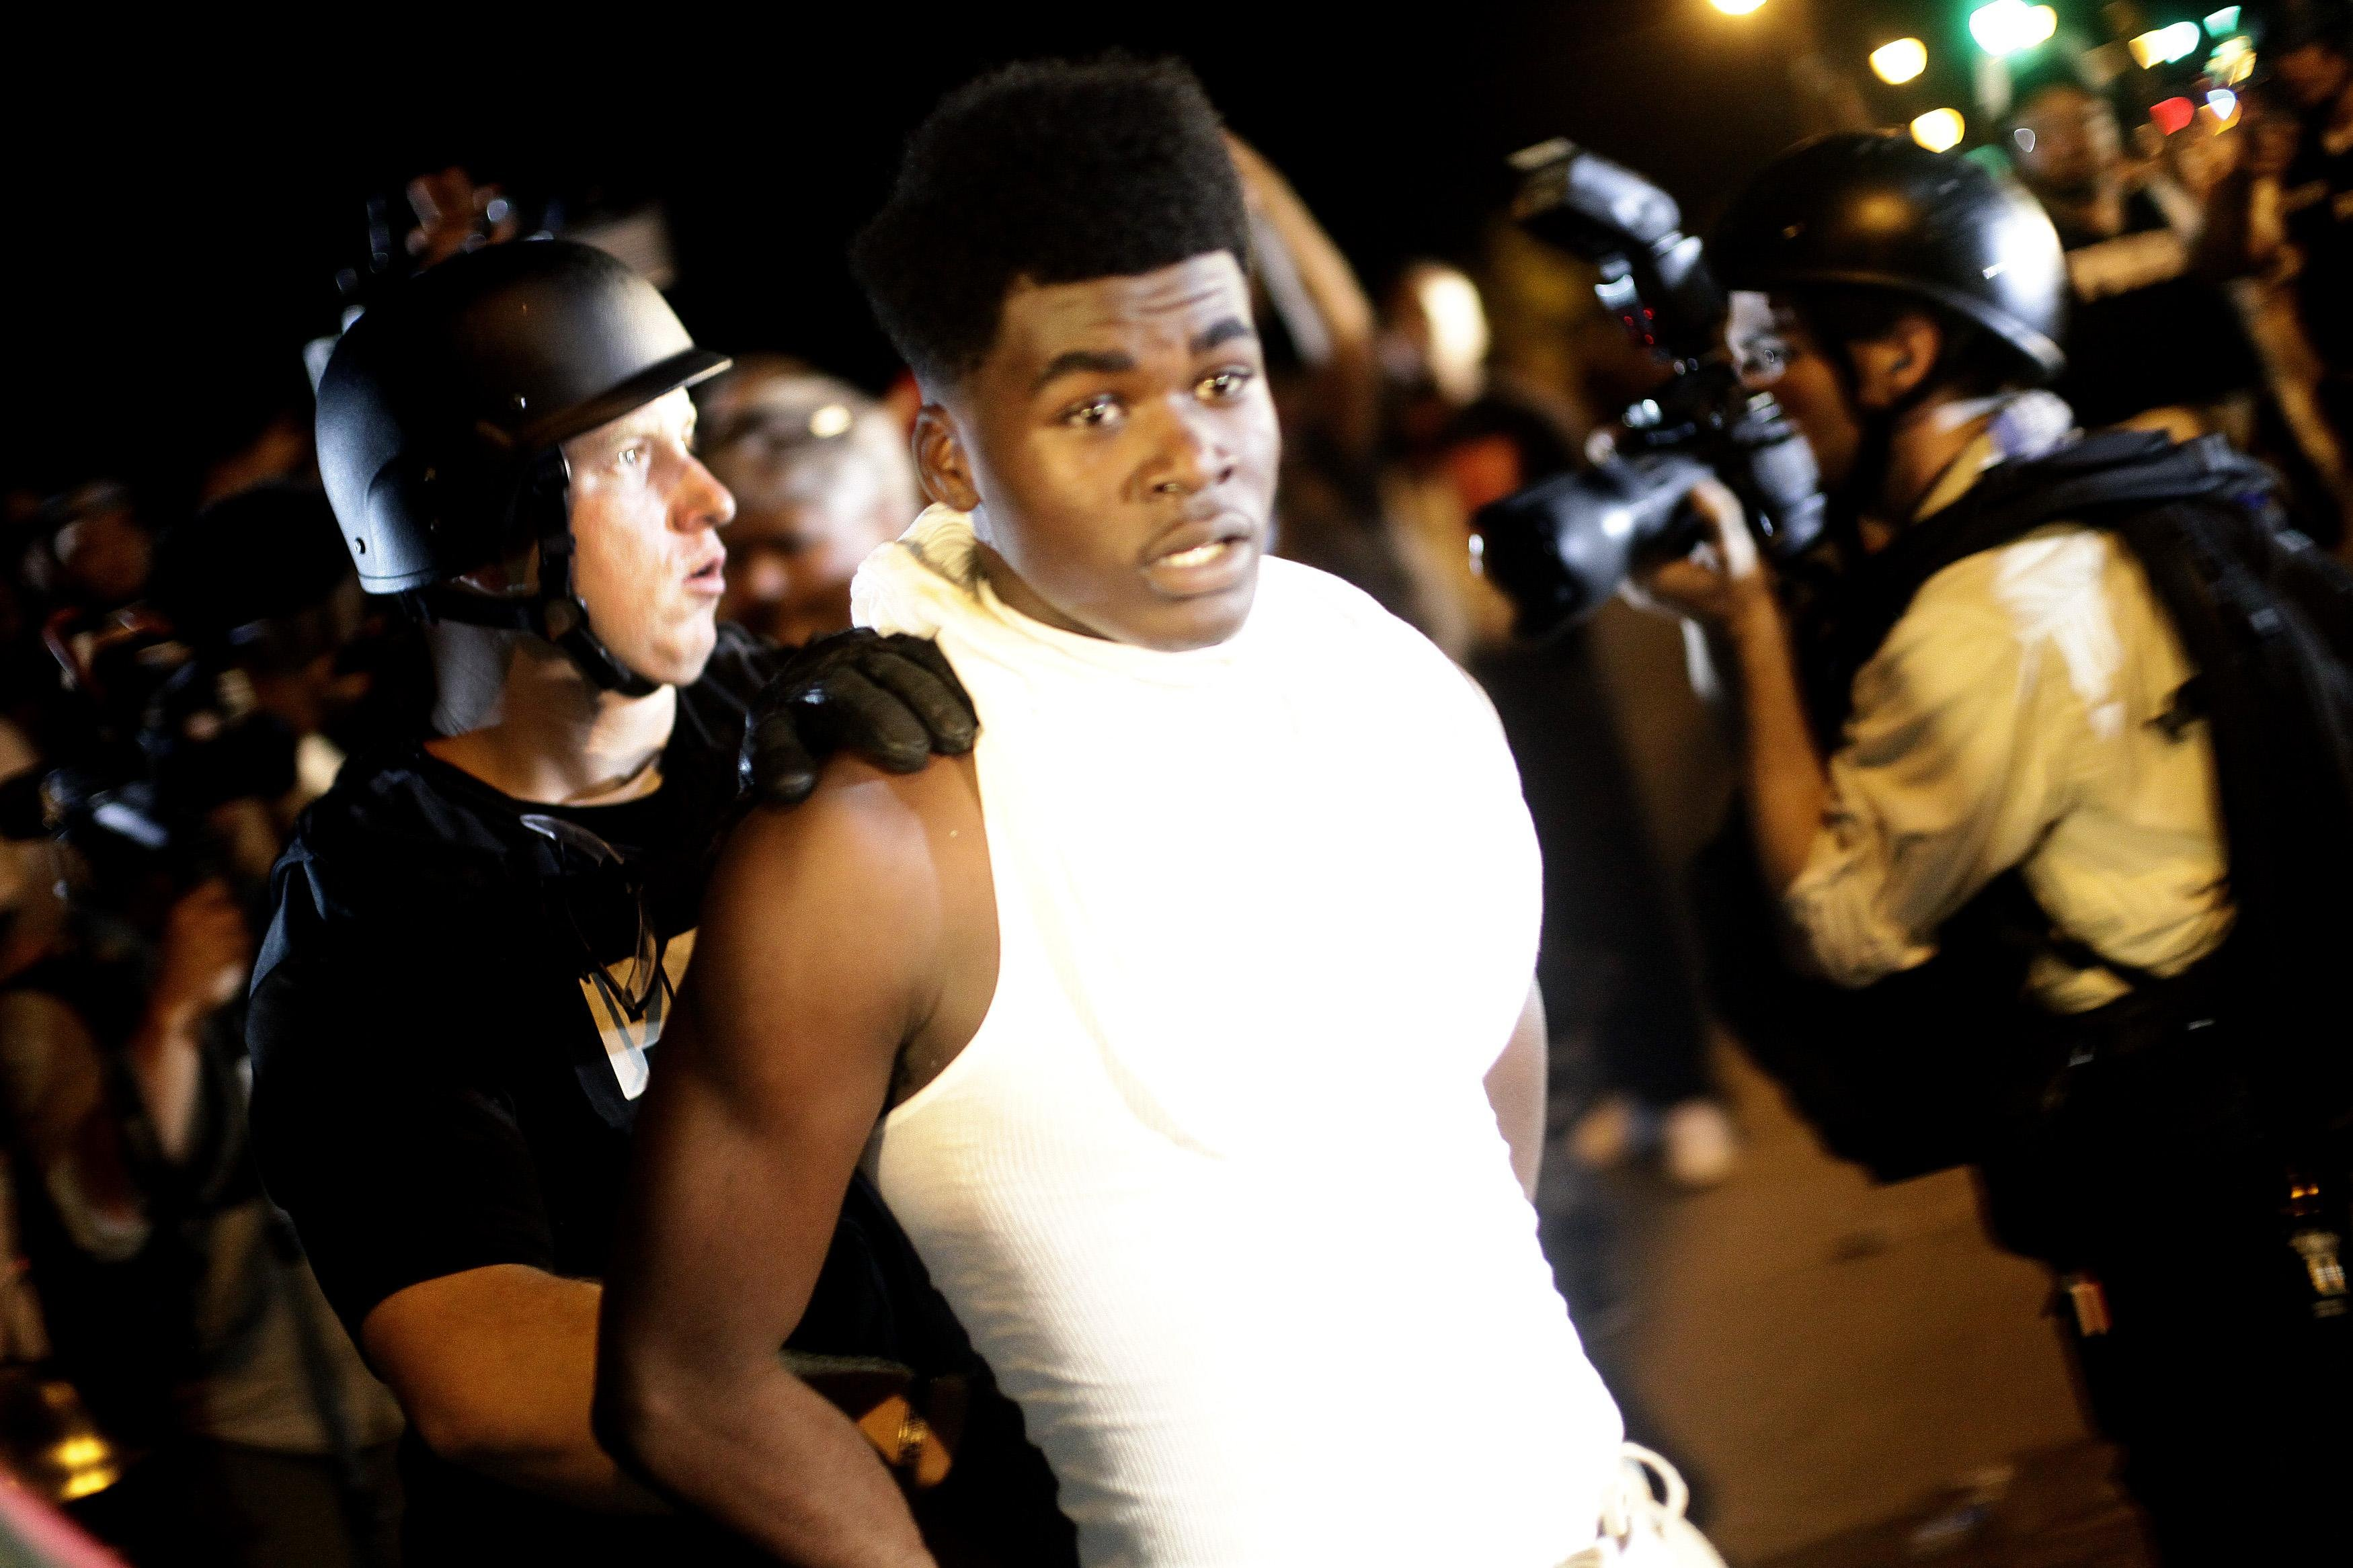 A police officer in riot gear detains a demonstrator protesting against the shooting of Michael Brown, in Ferguson, Mo. on Aug. 19, 2014.